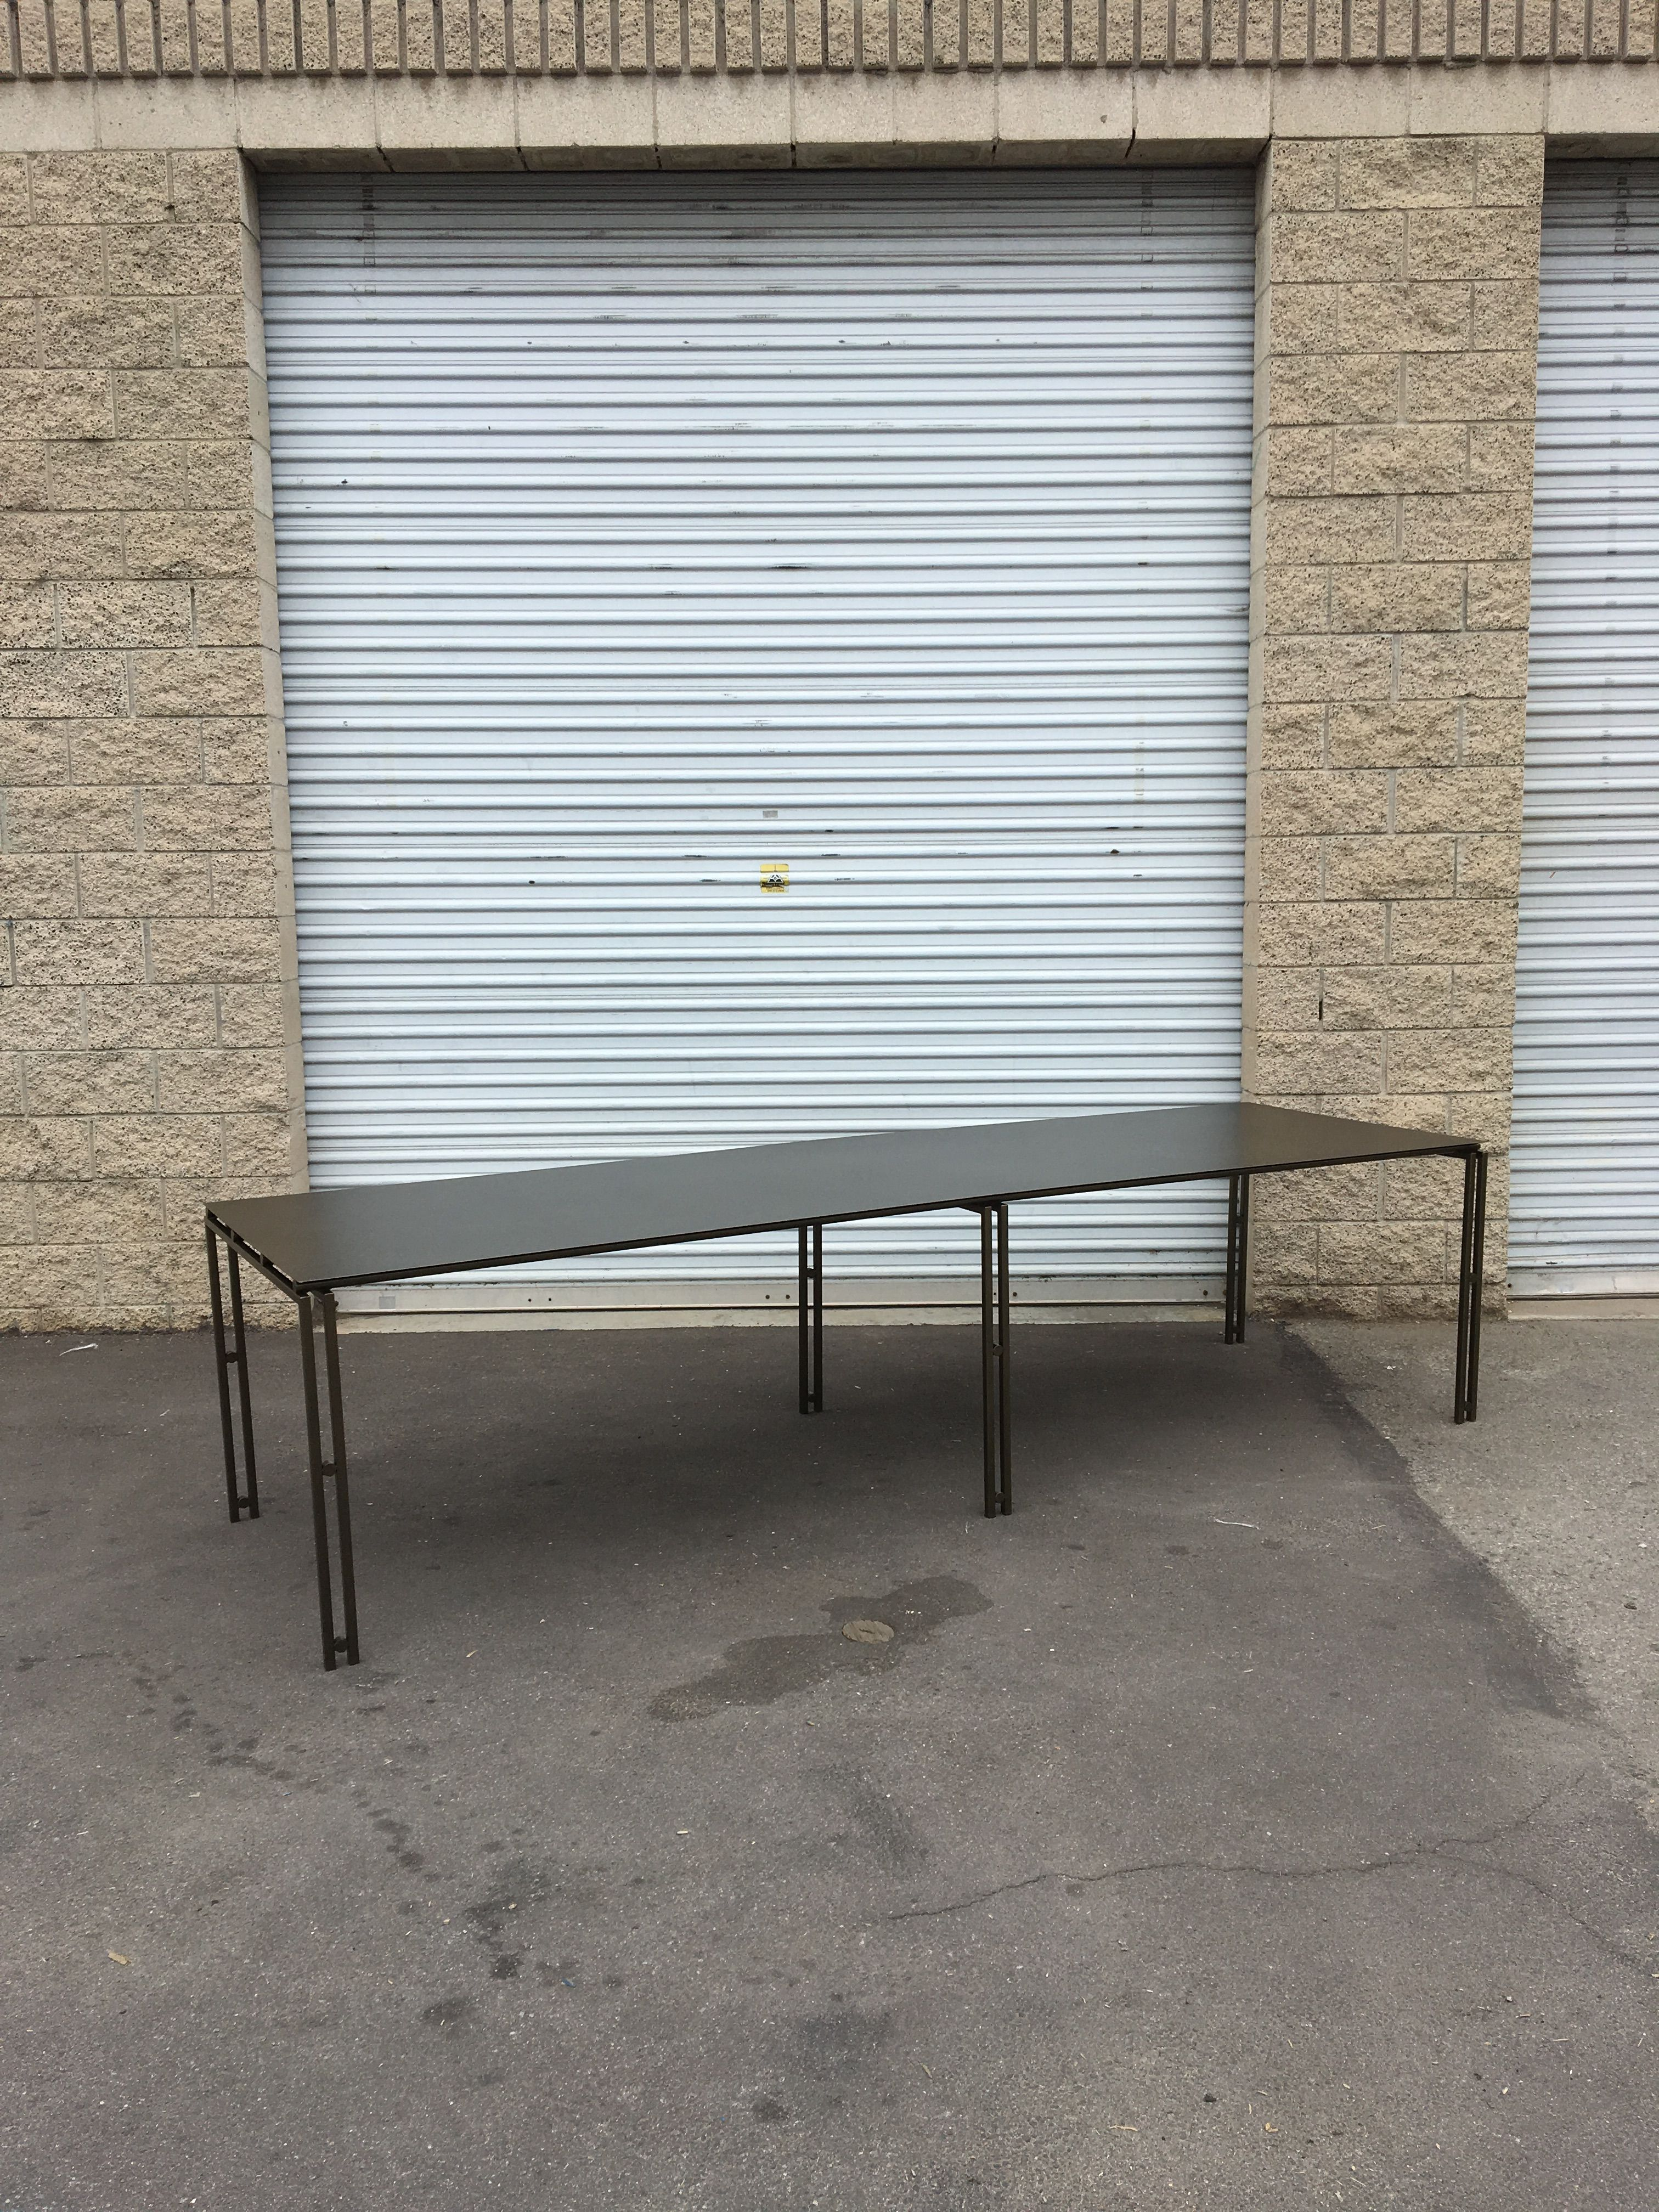 Suspension Metal Dining Table - Large Size product image 0